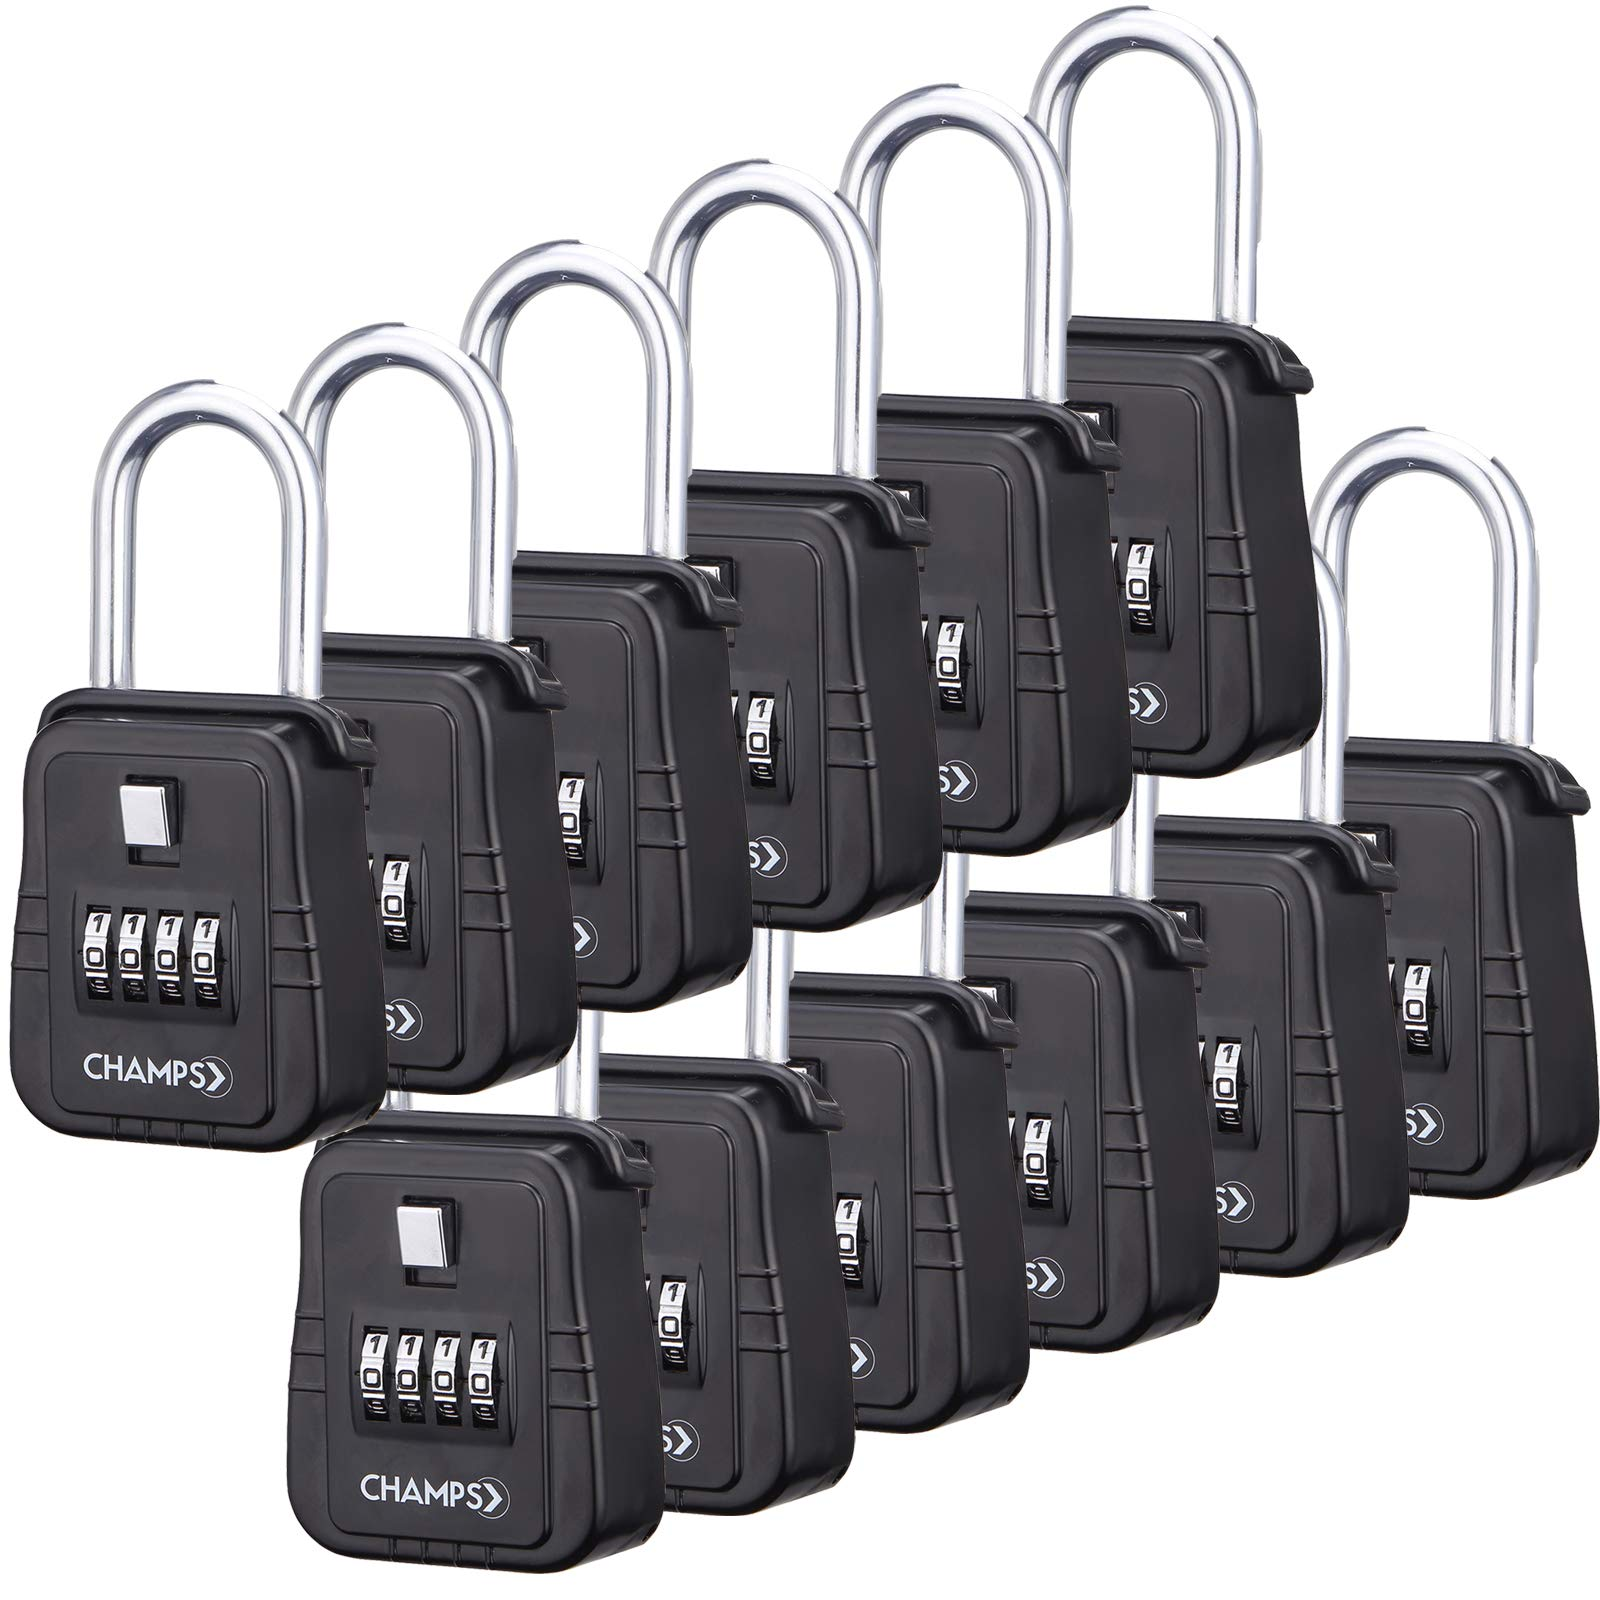 Champs Combination Realtor Lock, 4 Digit Comination Padlock, Real Estate Key Lock Box, Set-Your-Own Combination [12 Packs, Black] by Champs